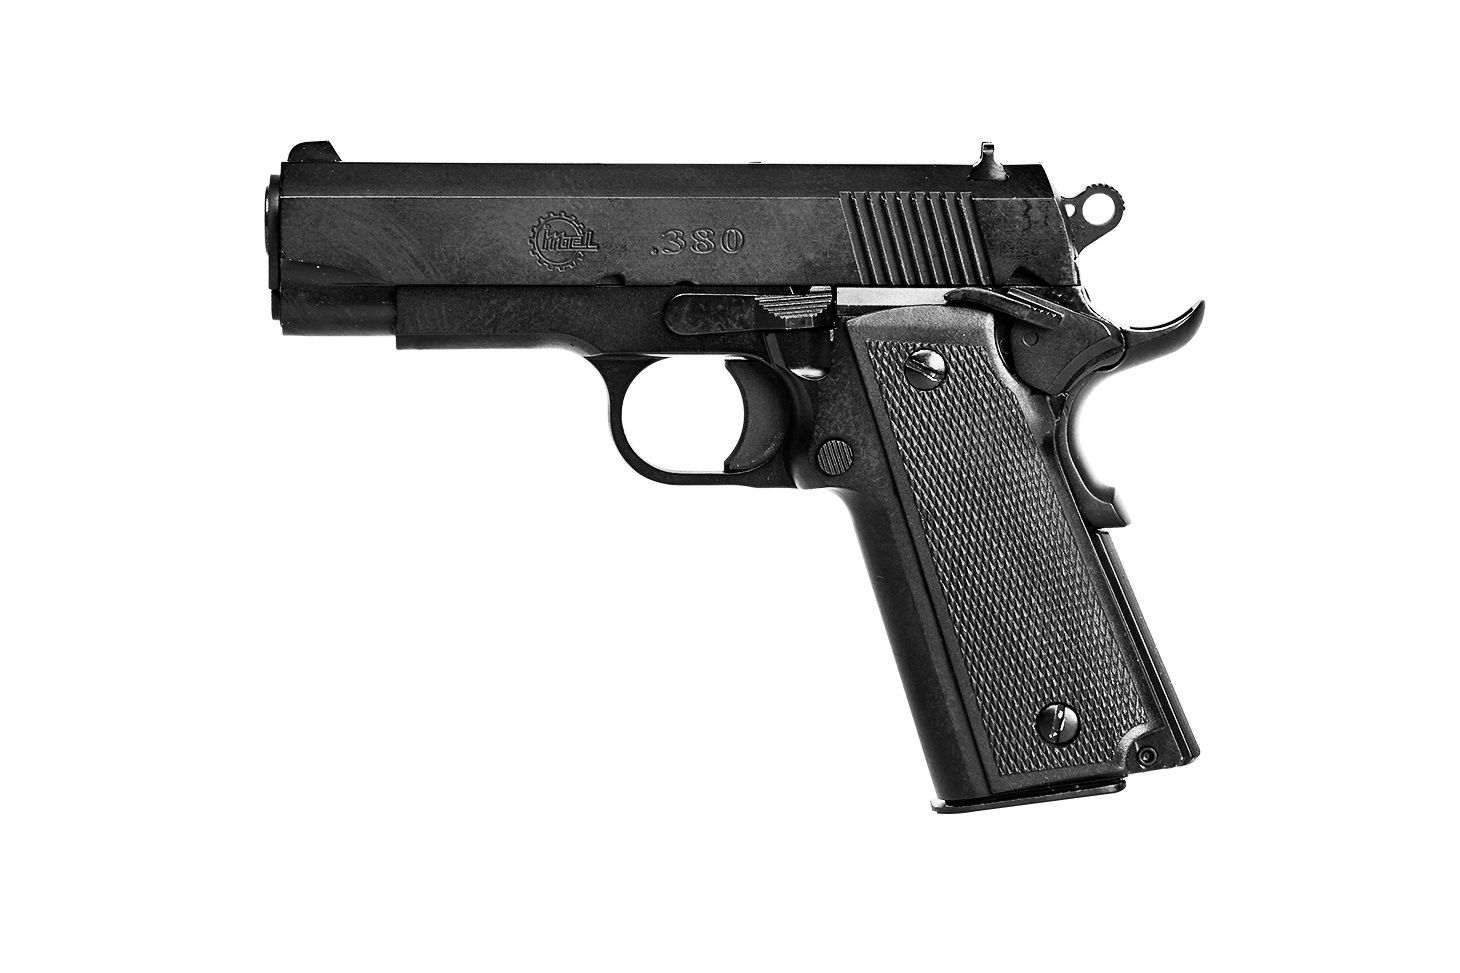 PISTOLA .380 GC - IMBEL MD1 C/ 03 CARREGADORES